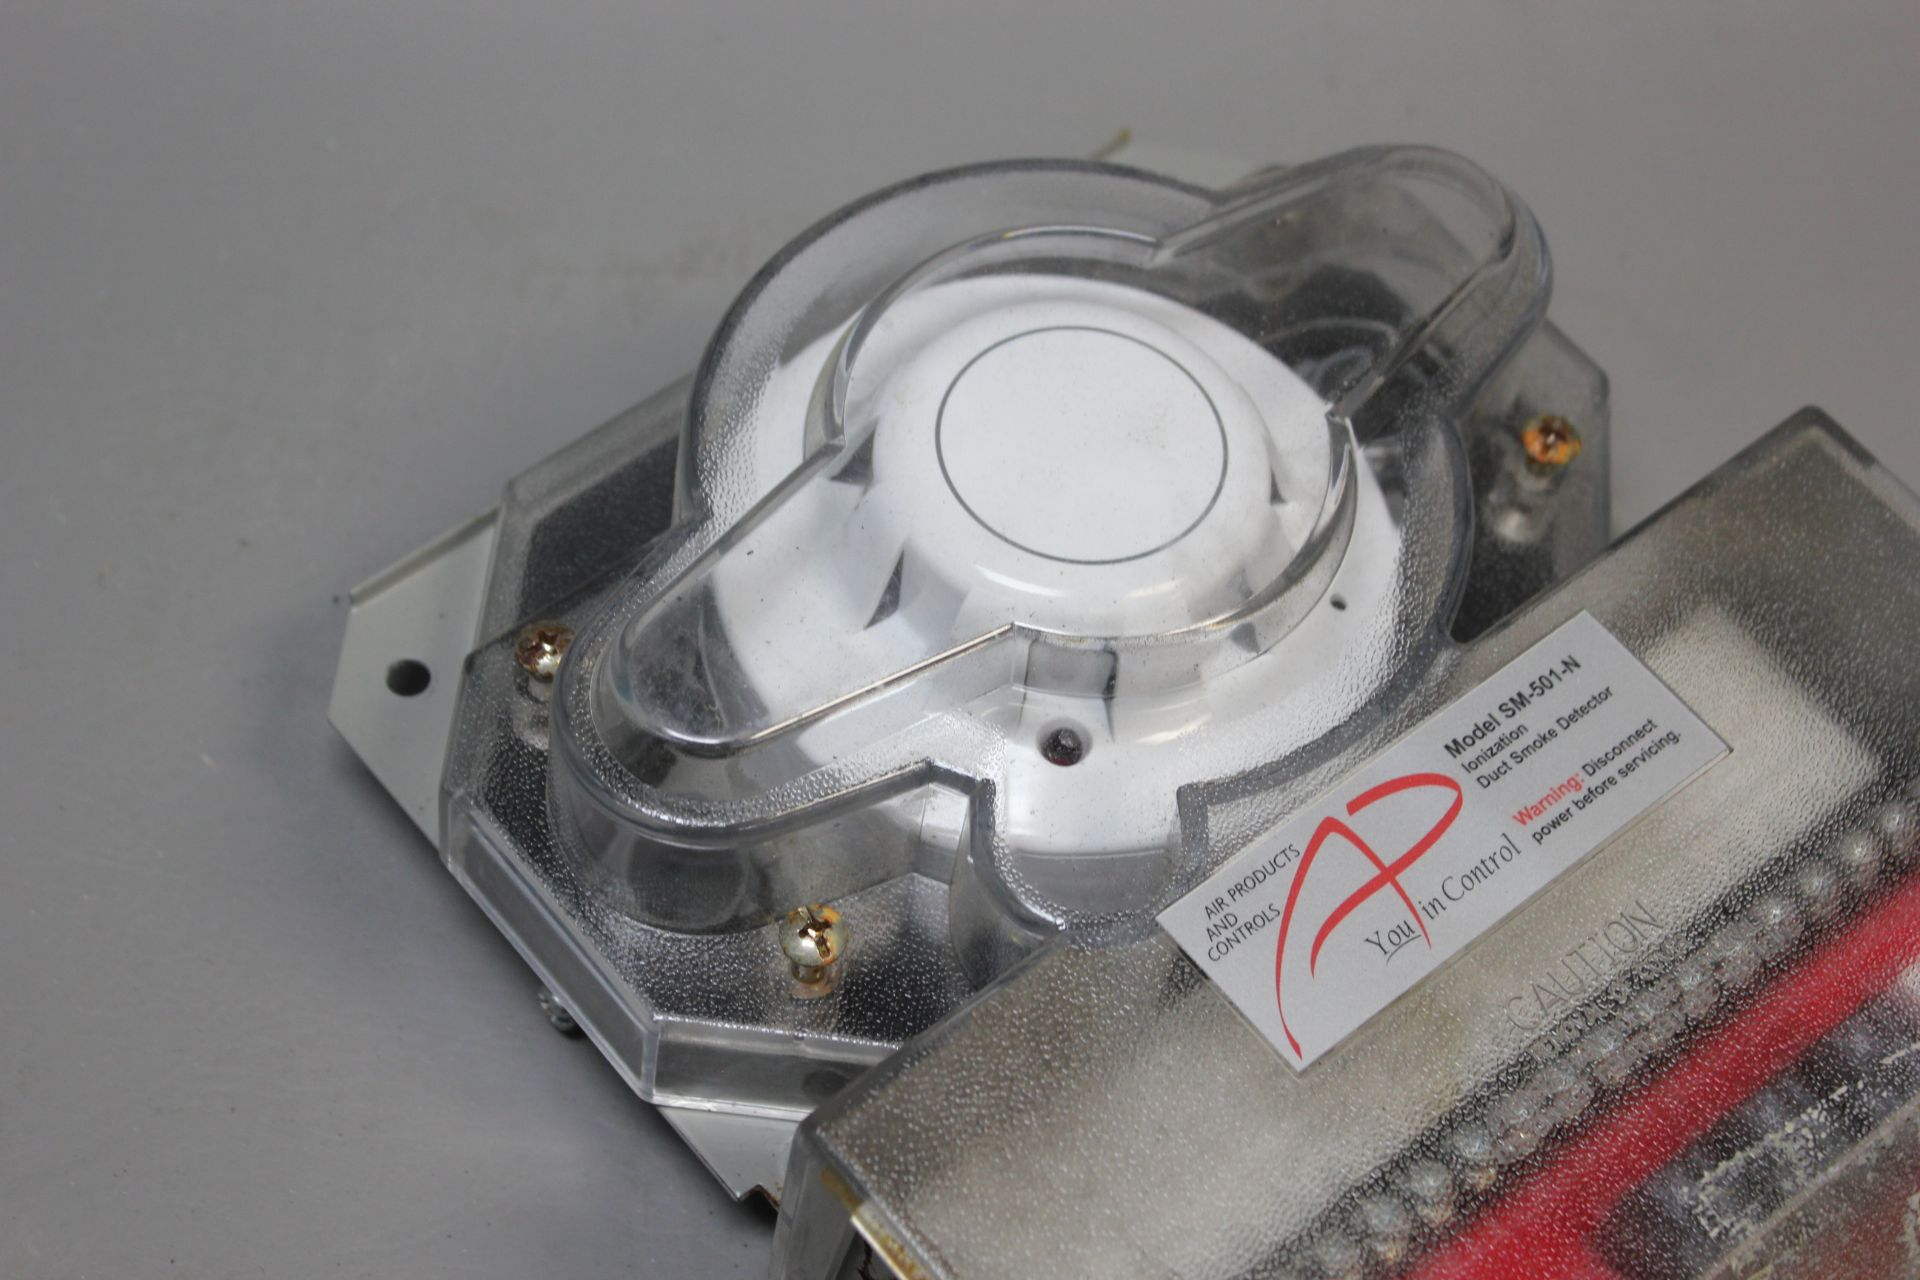 AIR PRODUCTS 4 WIRE DUCT SMOKE DETECTOR - Image 6 of 6